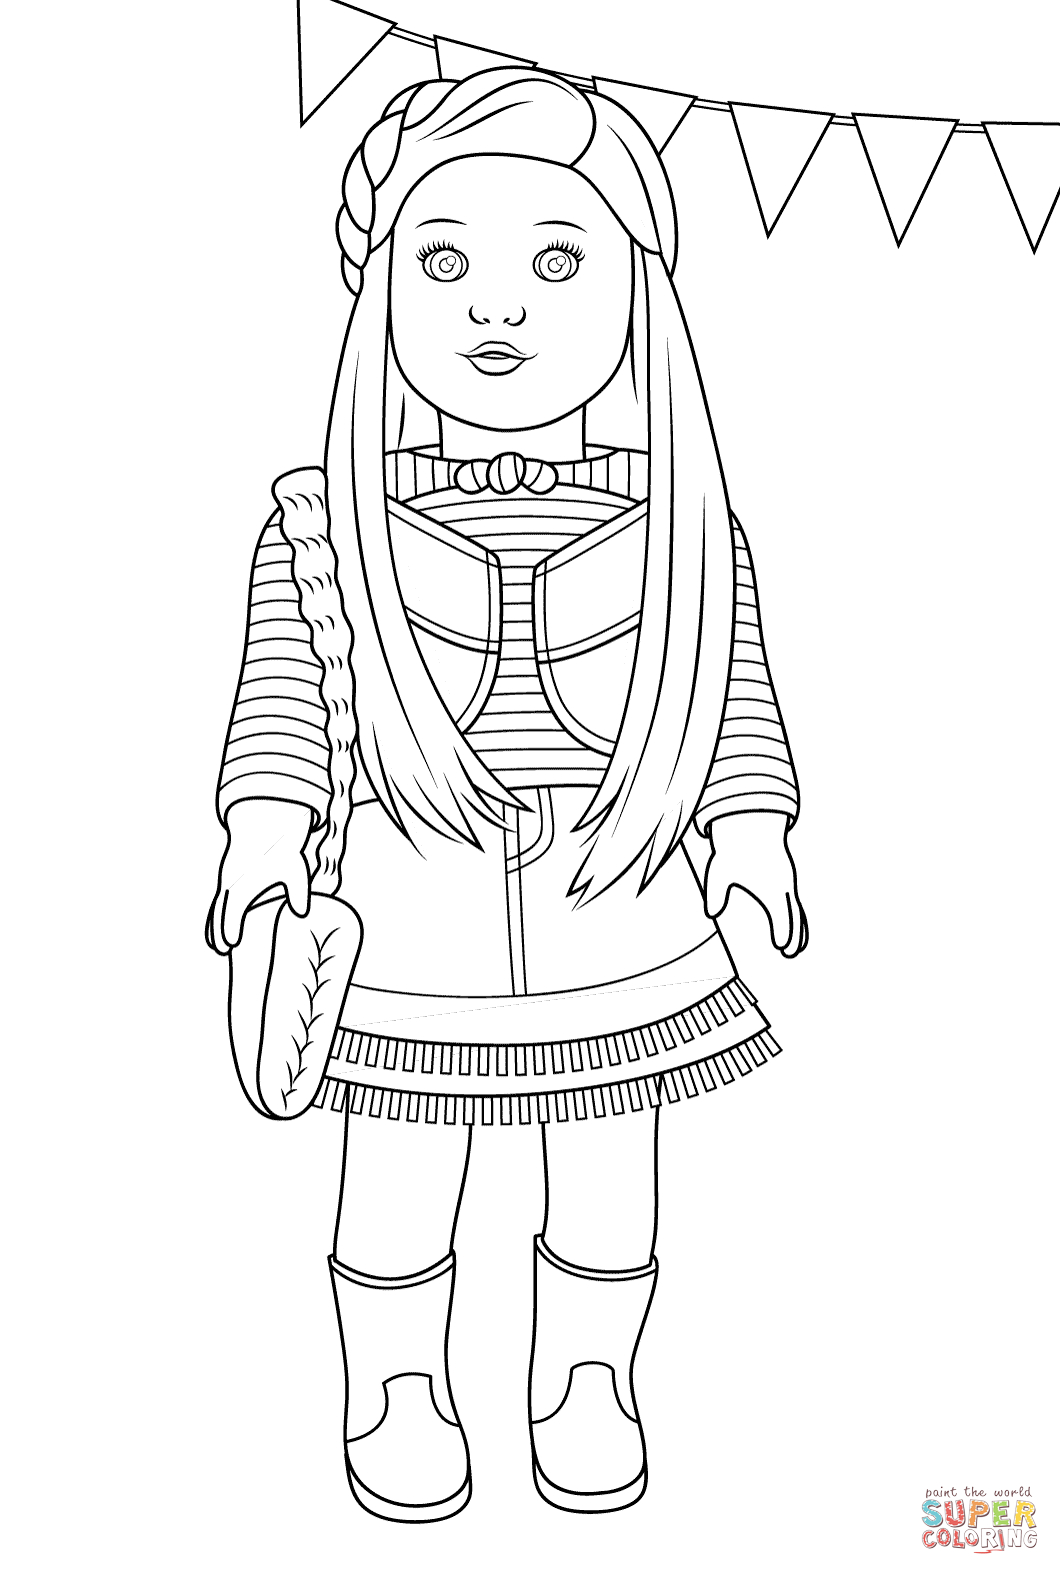 American Girl Mckenna Coloring Page | Free Printable Coloring Pages - Free Printable Coloring Pages For Girls